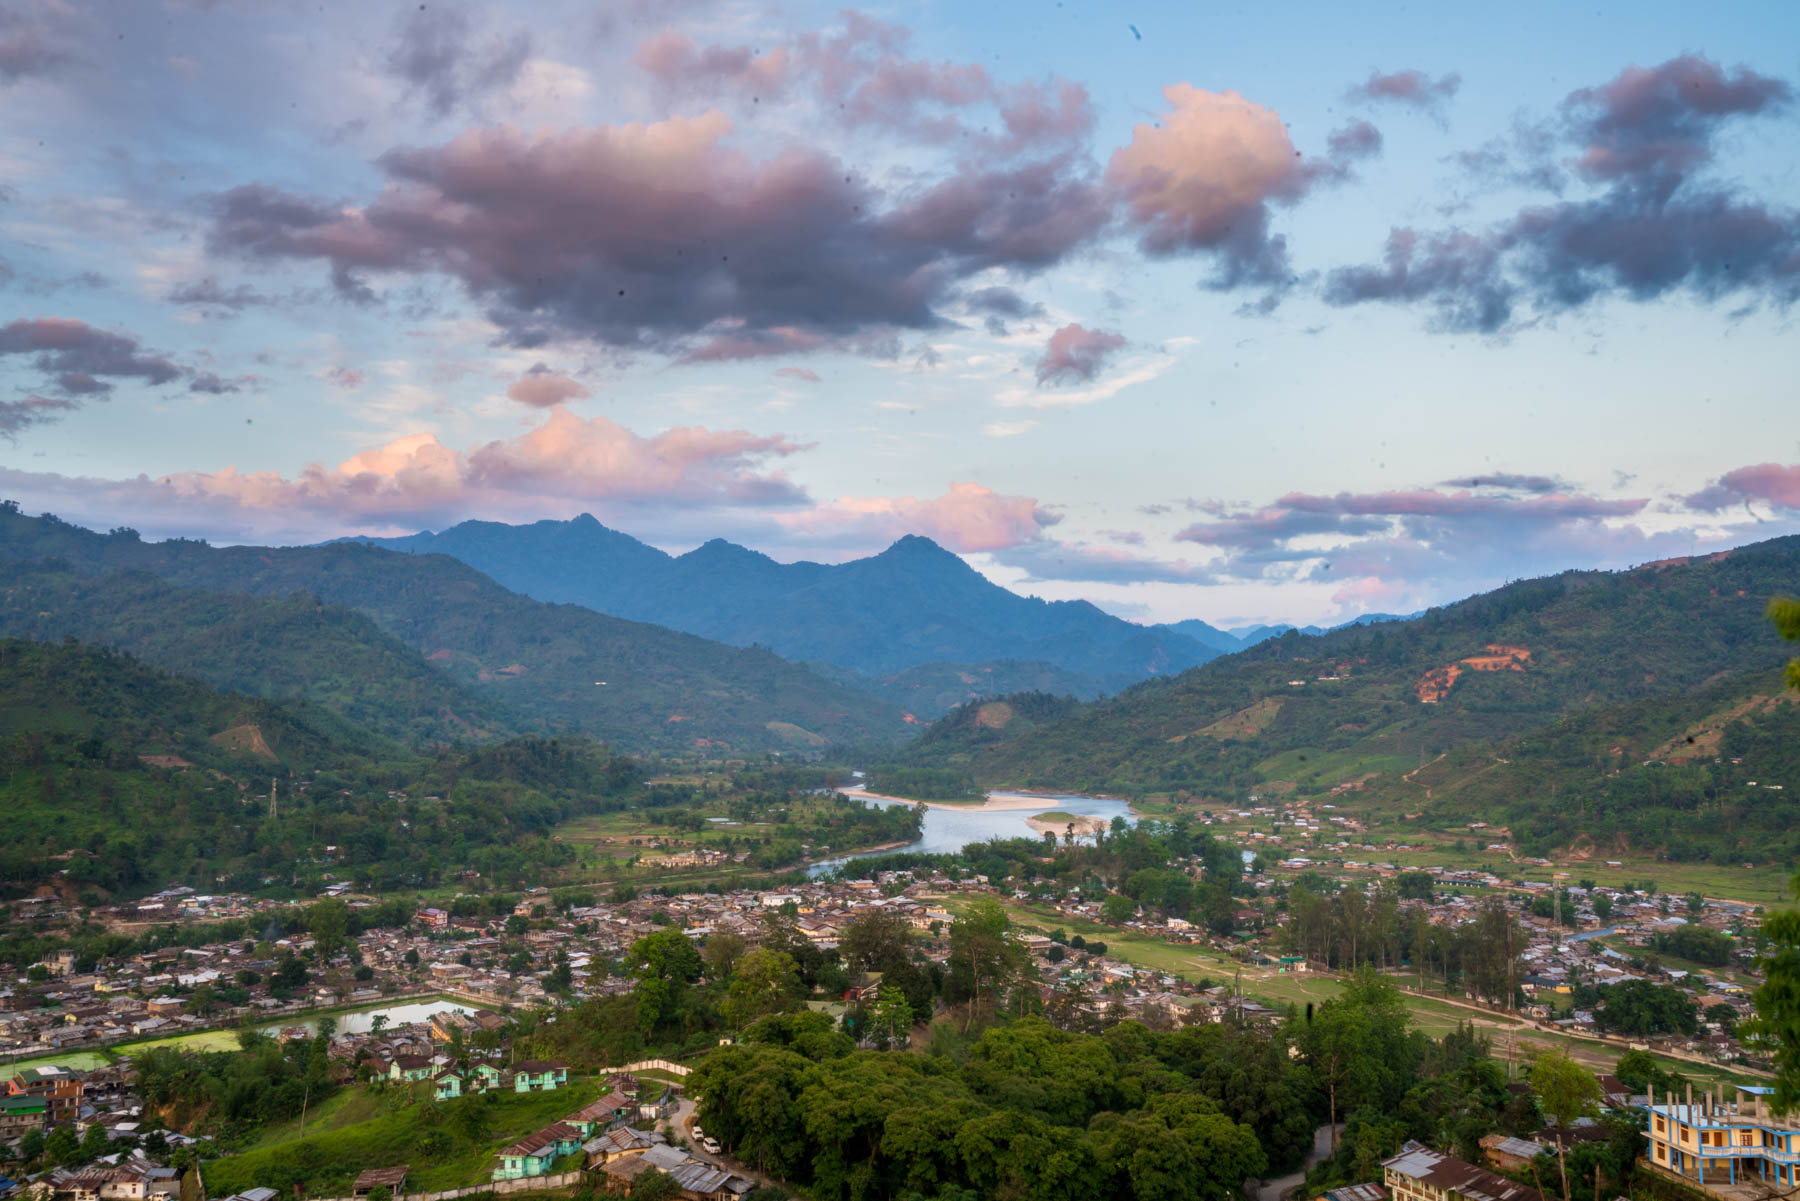 Backpacking in Arunachal Pradesh guide - Sunset over Daporijo - Lost With Purpose